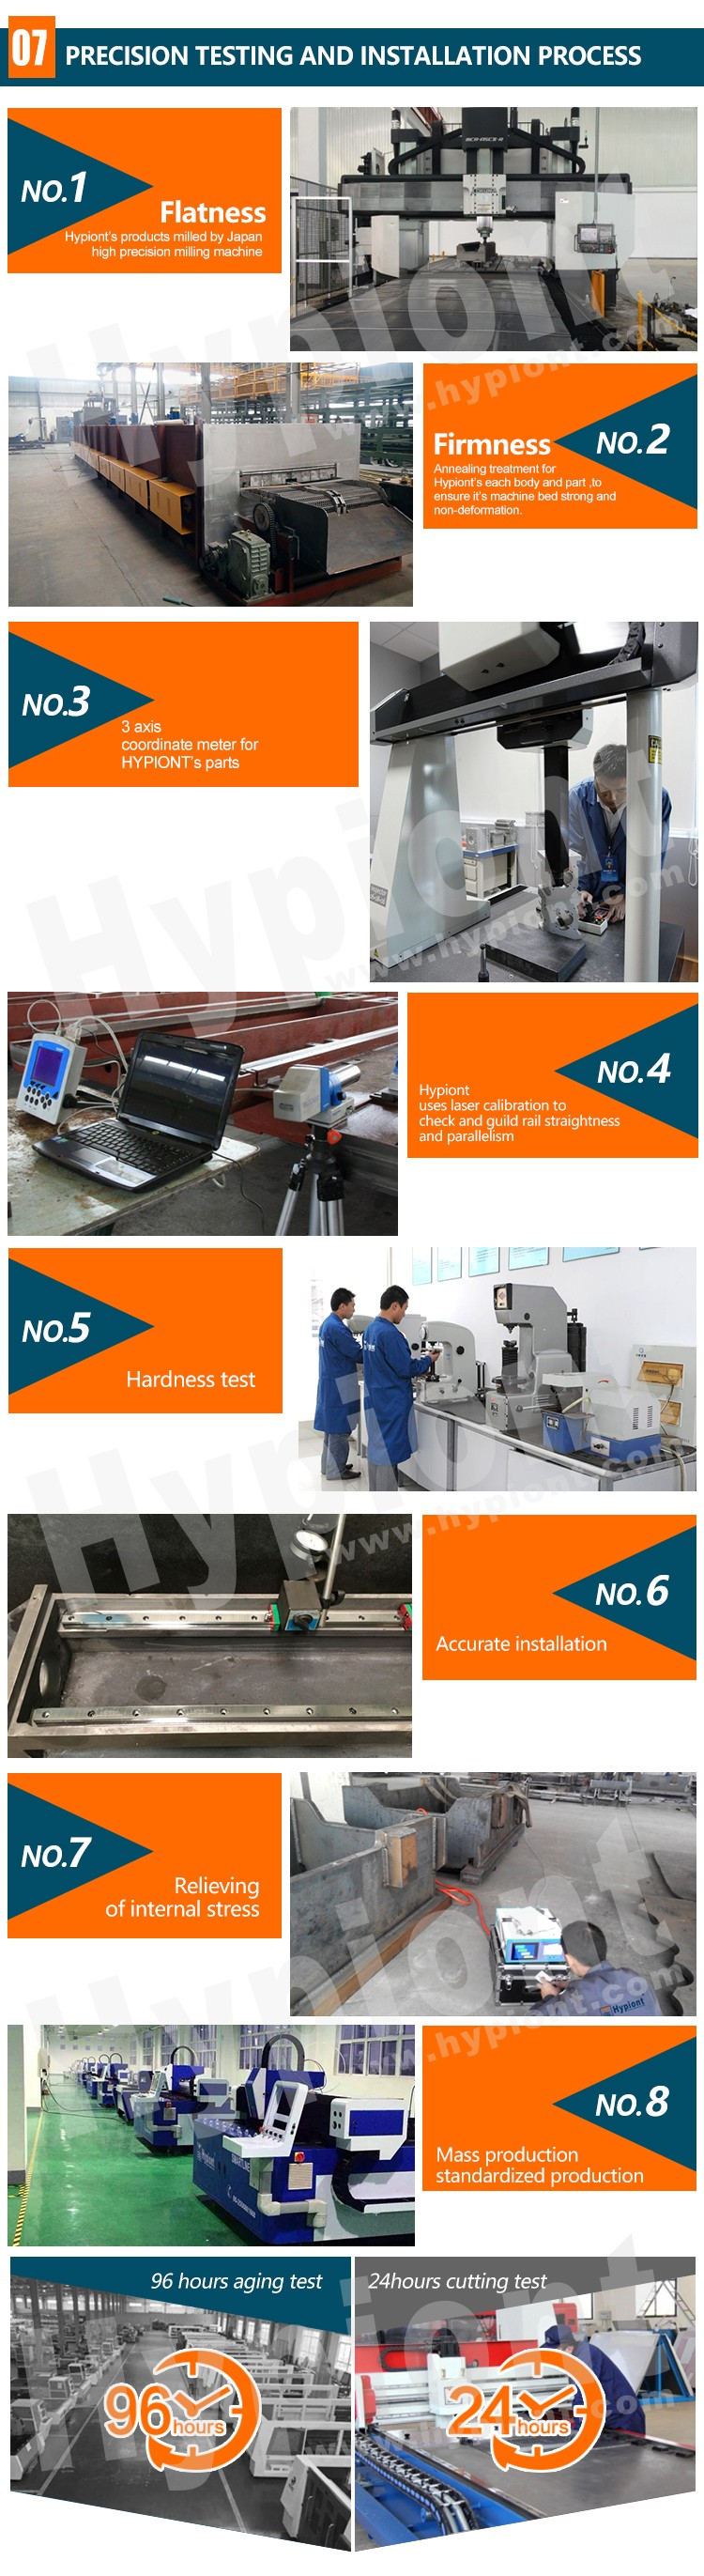 waterjet cutting machine for glass cutting with TUV CE ISO9001 certifications and 3 Years warranty